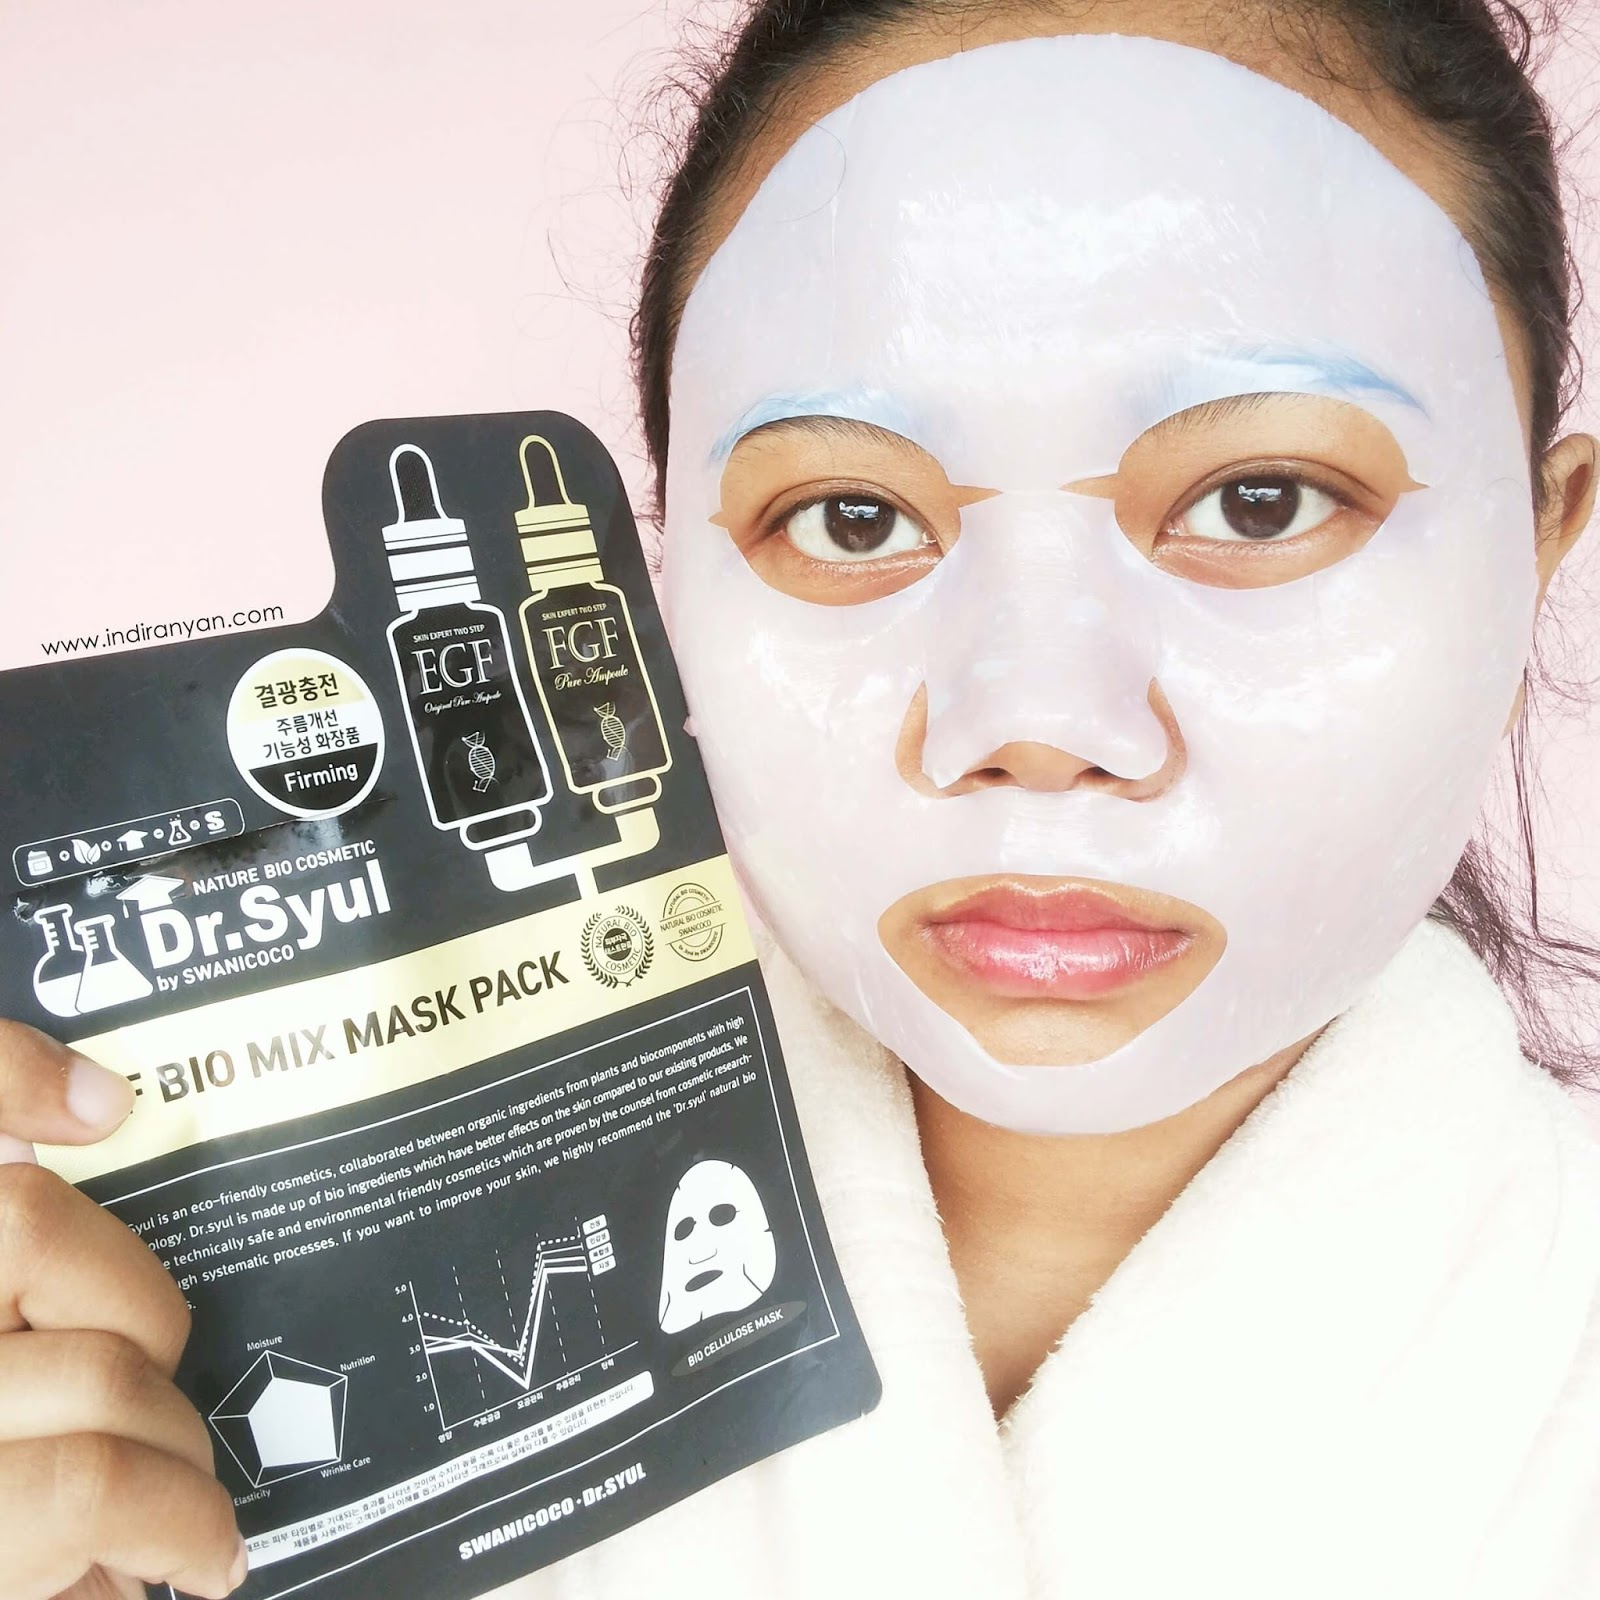 swanicoco-2gf-bio-mix-mask-pack, review-swanicoco-2gf-bio-mix-mask-pack, swanicoco-2gf-bio-mix-mask-pack-review